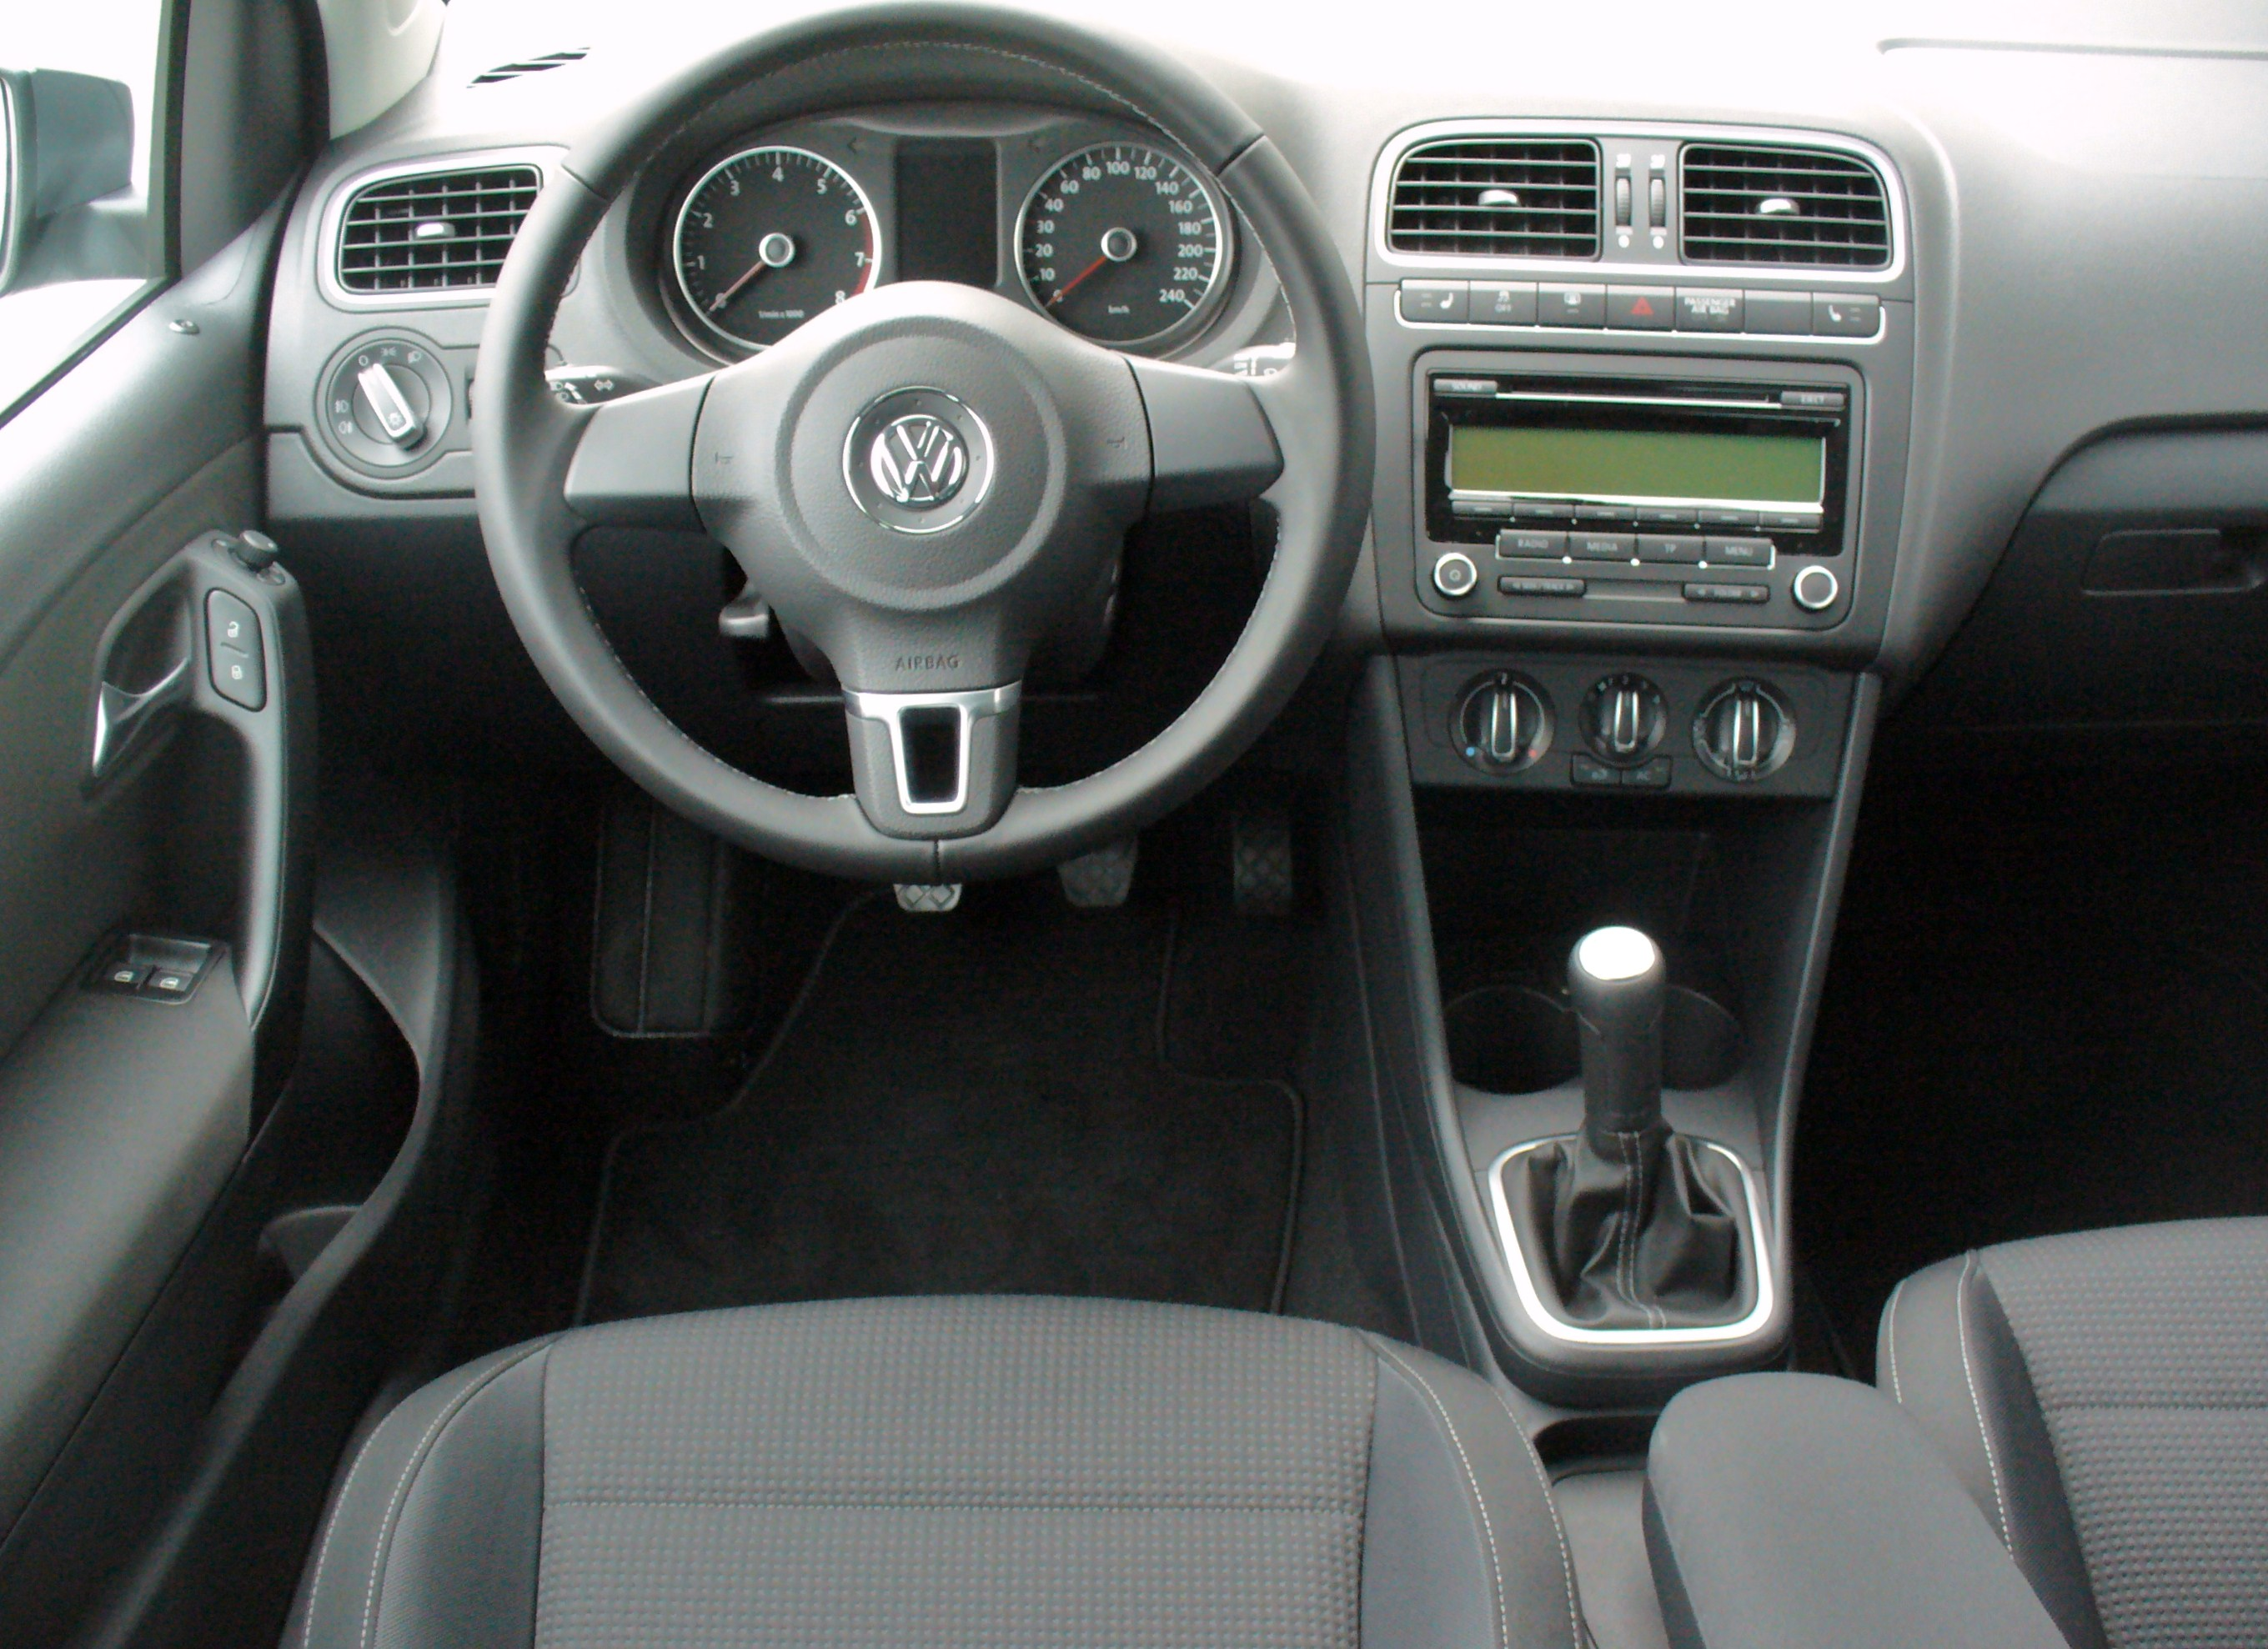 File:VW Polo V 1.2 Team Monosilber Interieur.JPG - Wikimedia Commons